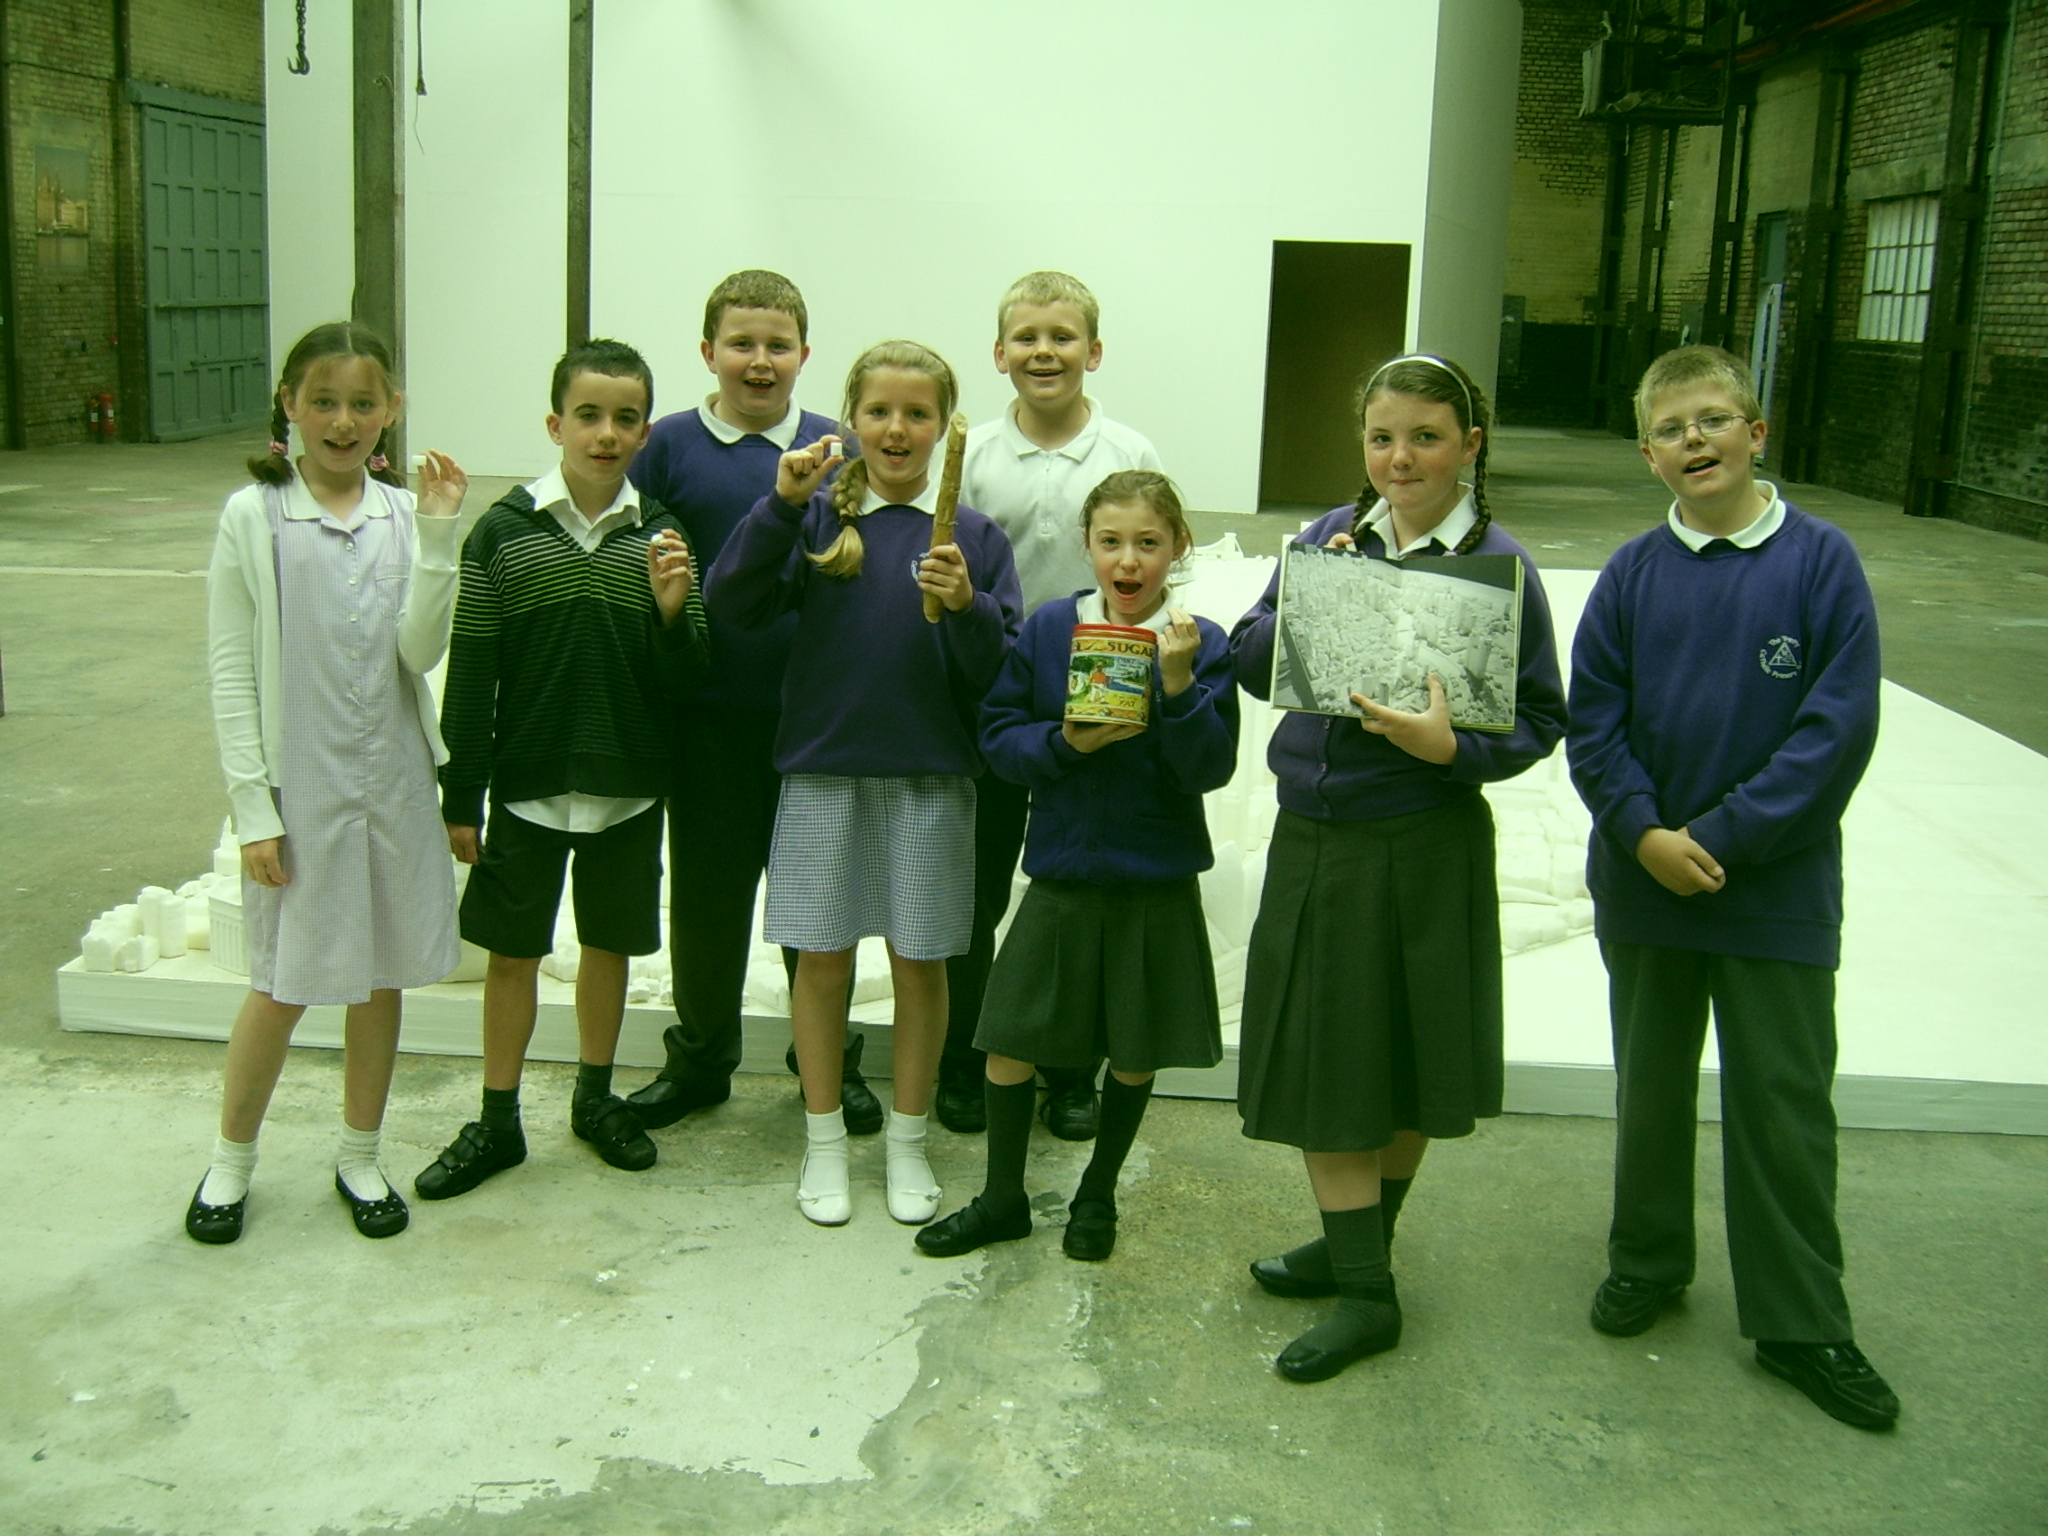 Trinity kids in August 2008